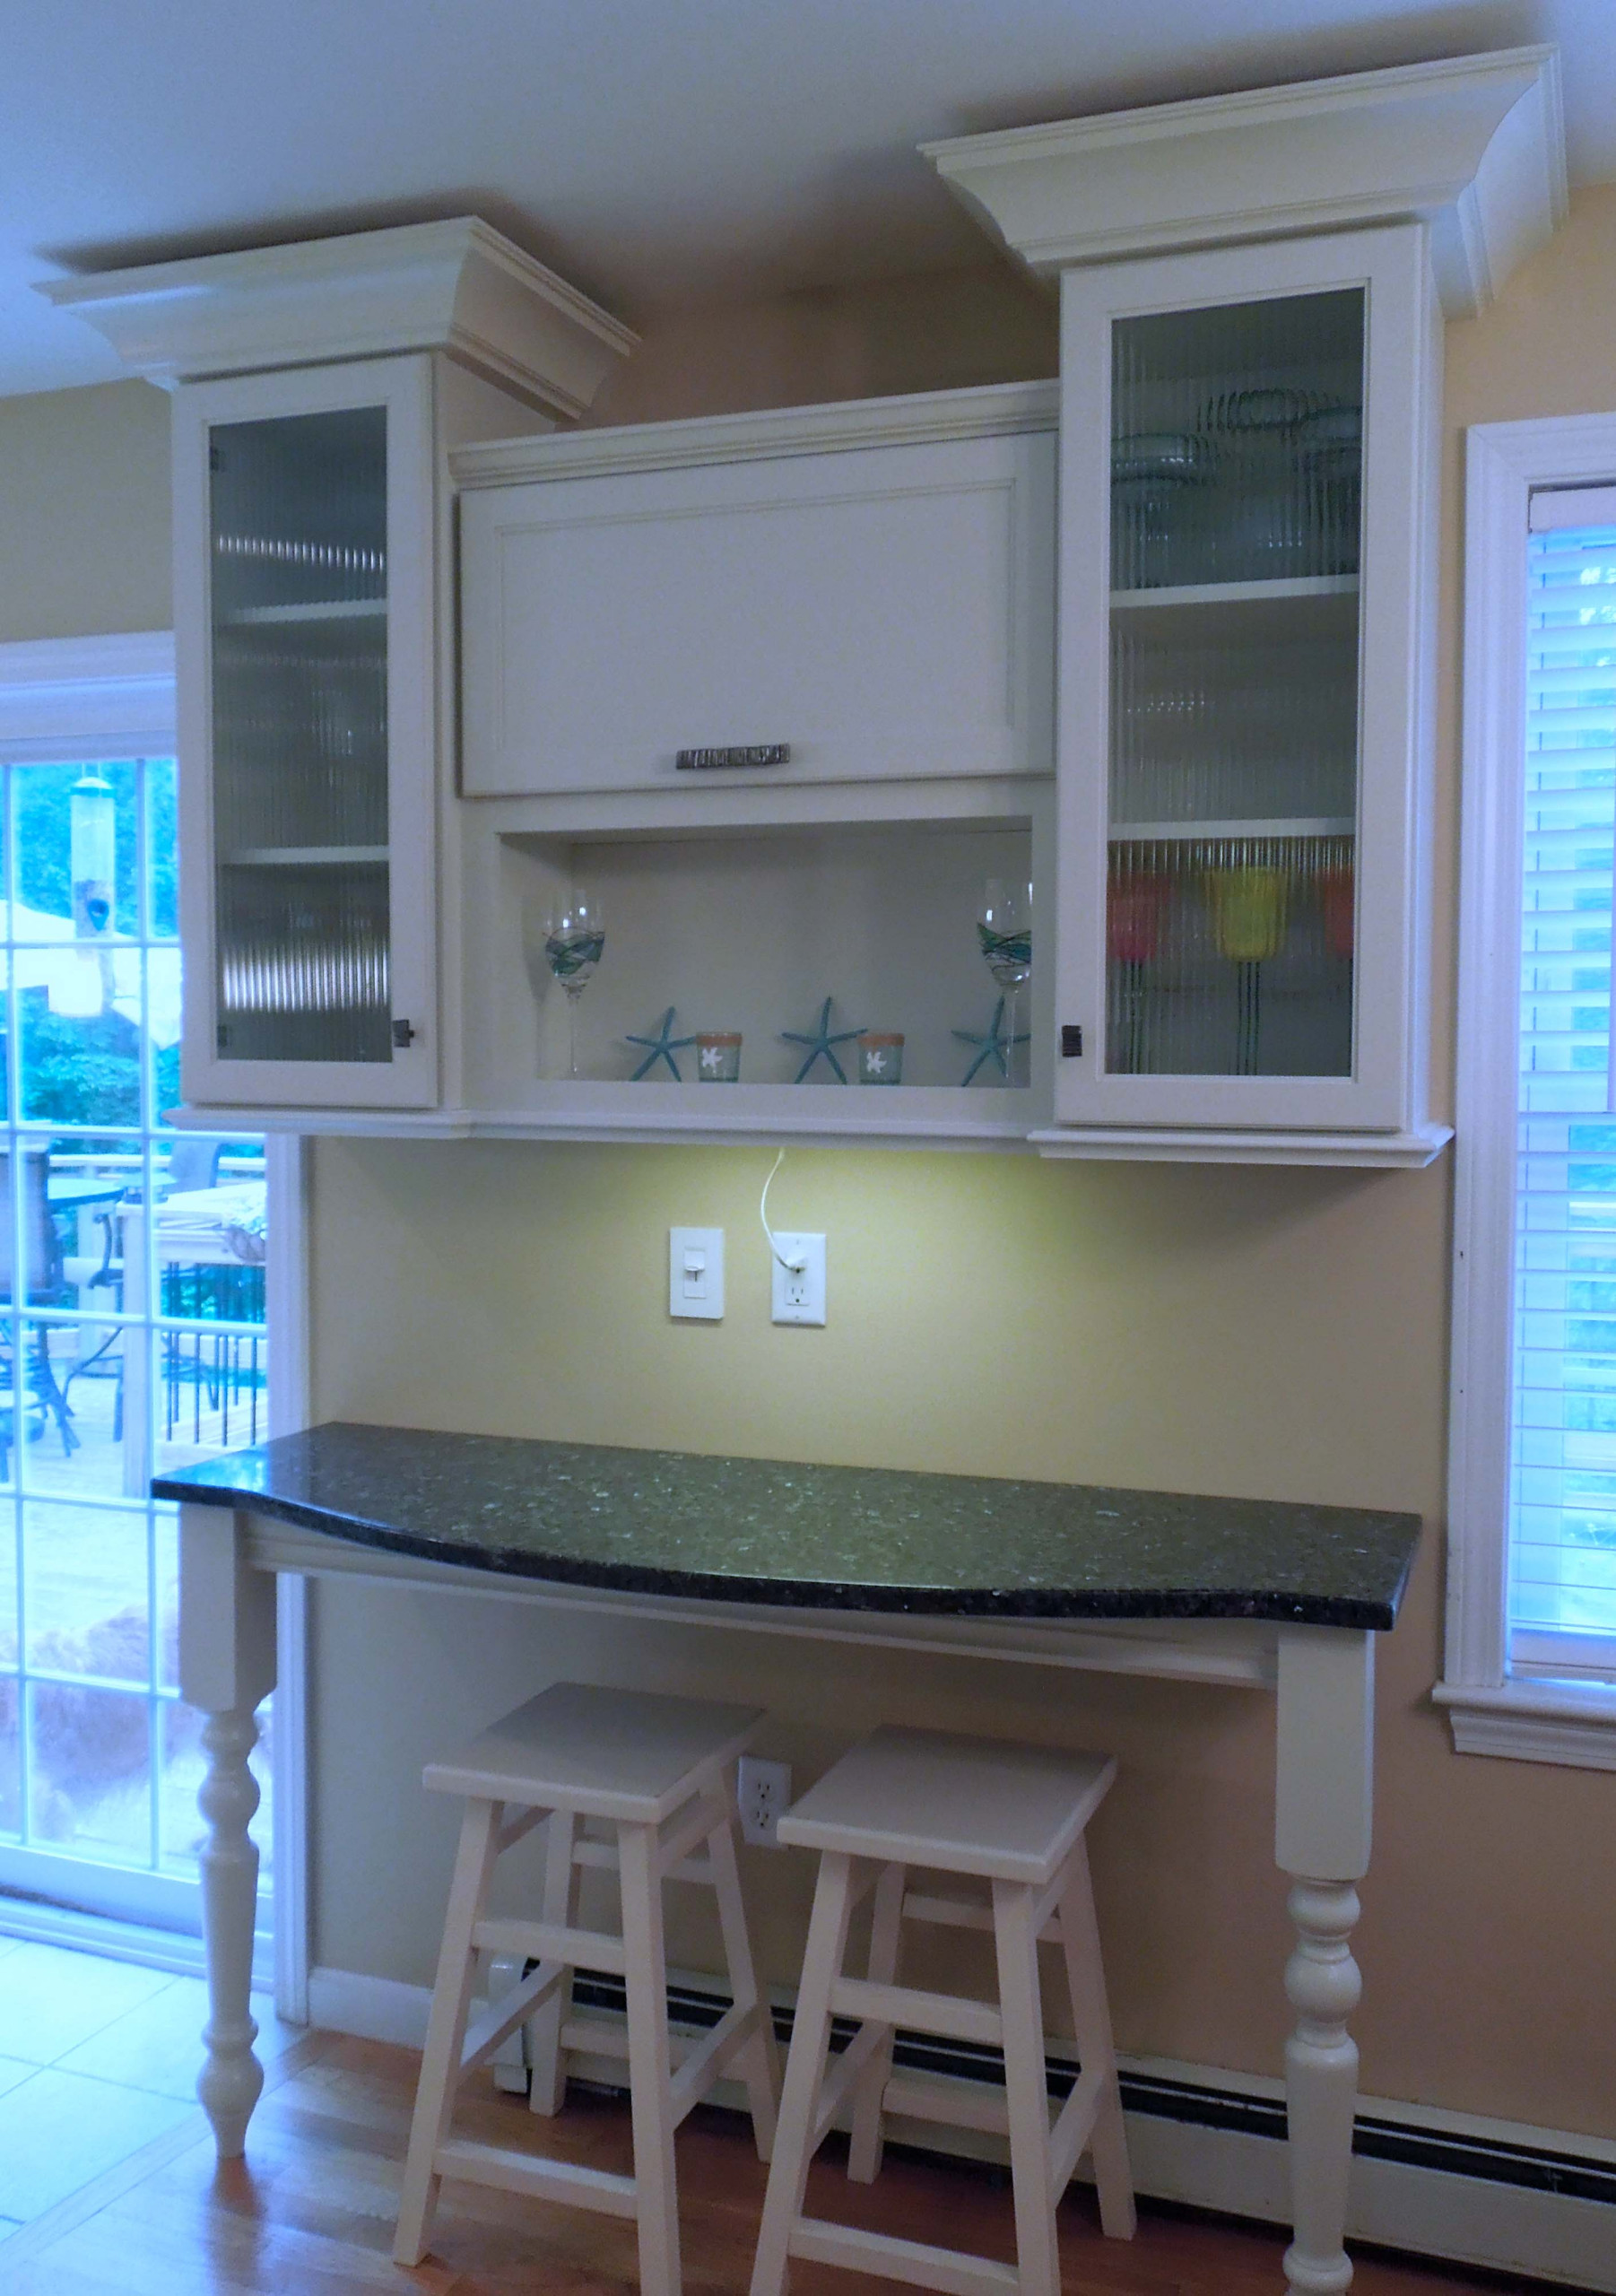 Reeded Glass at the Desk